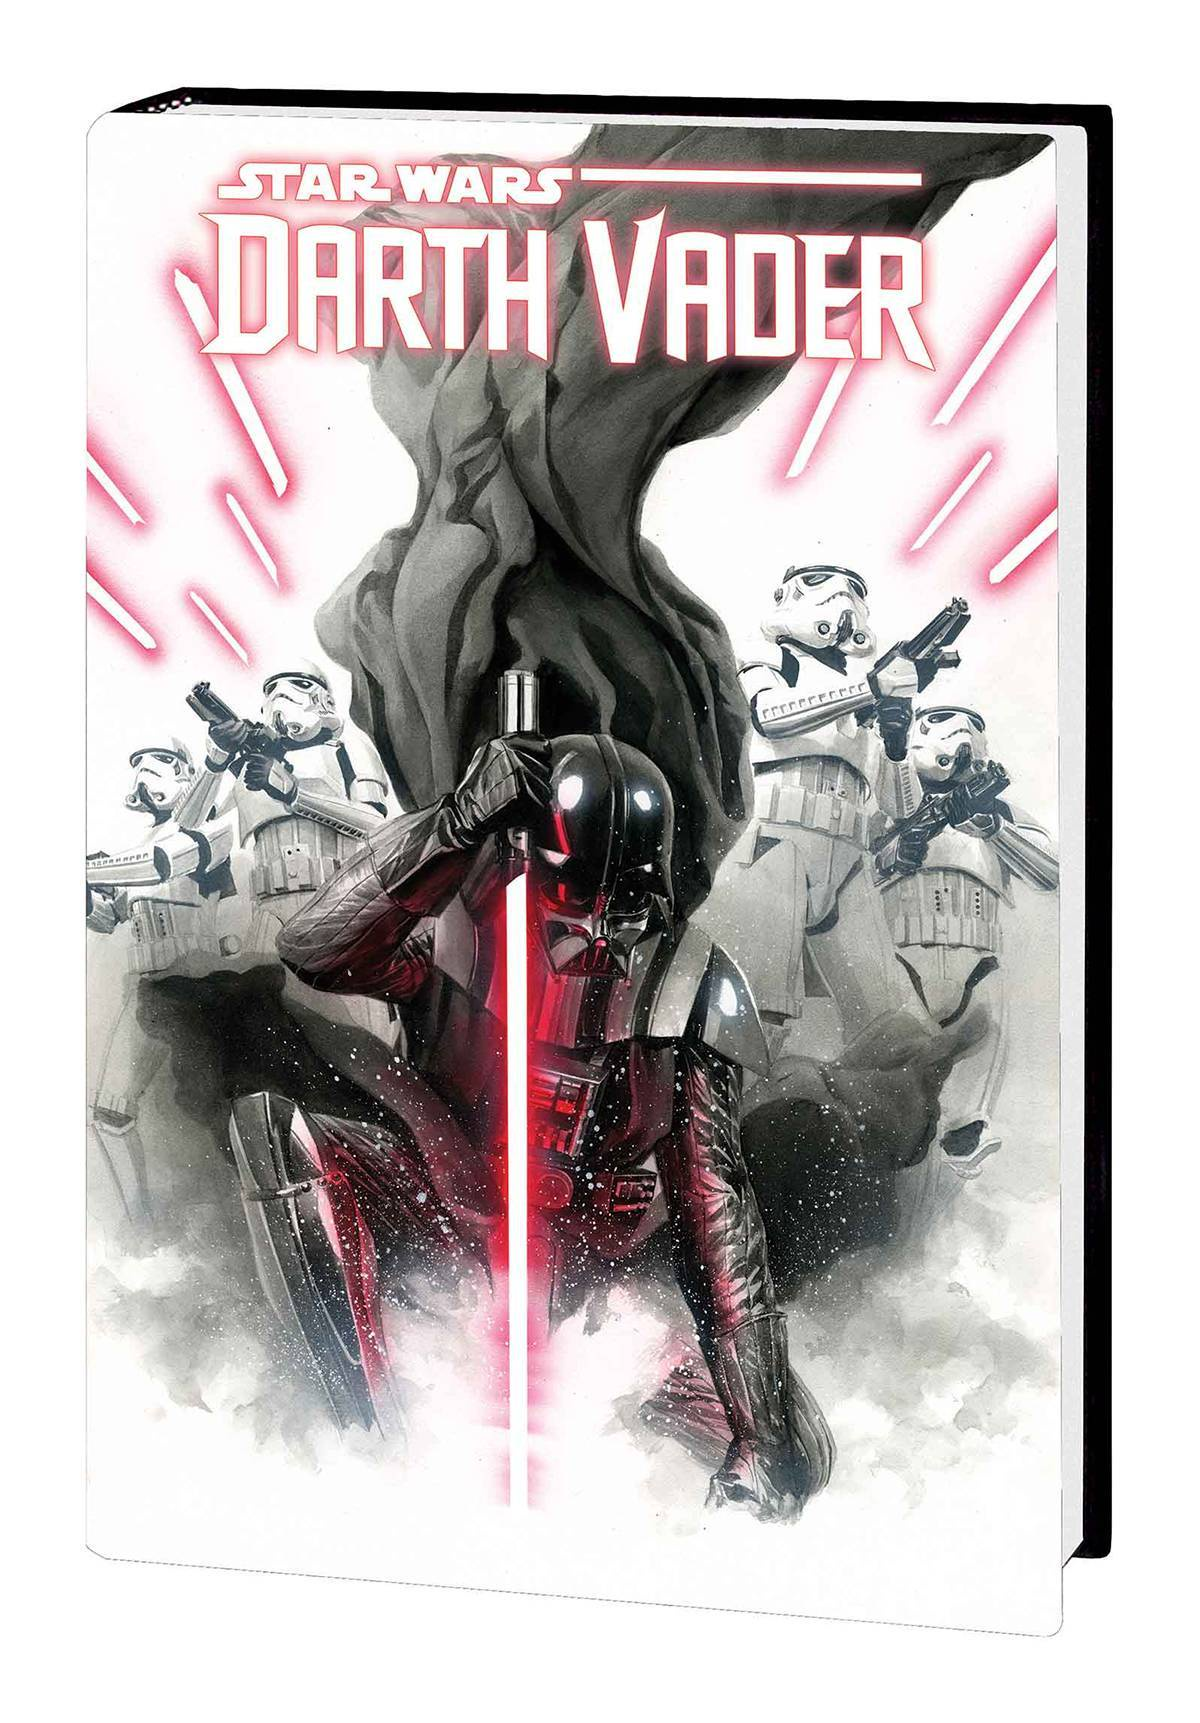 Star Wars Darth Vader HC Vol 01 Ross DM Var Ed